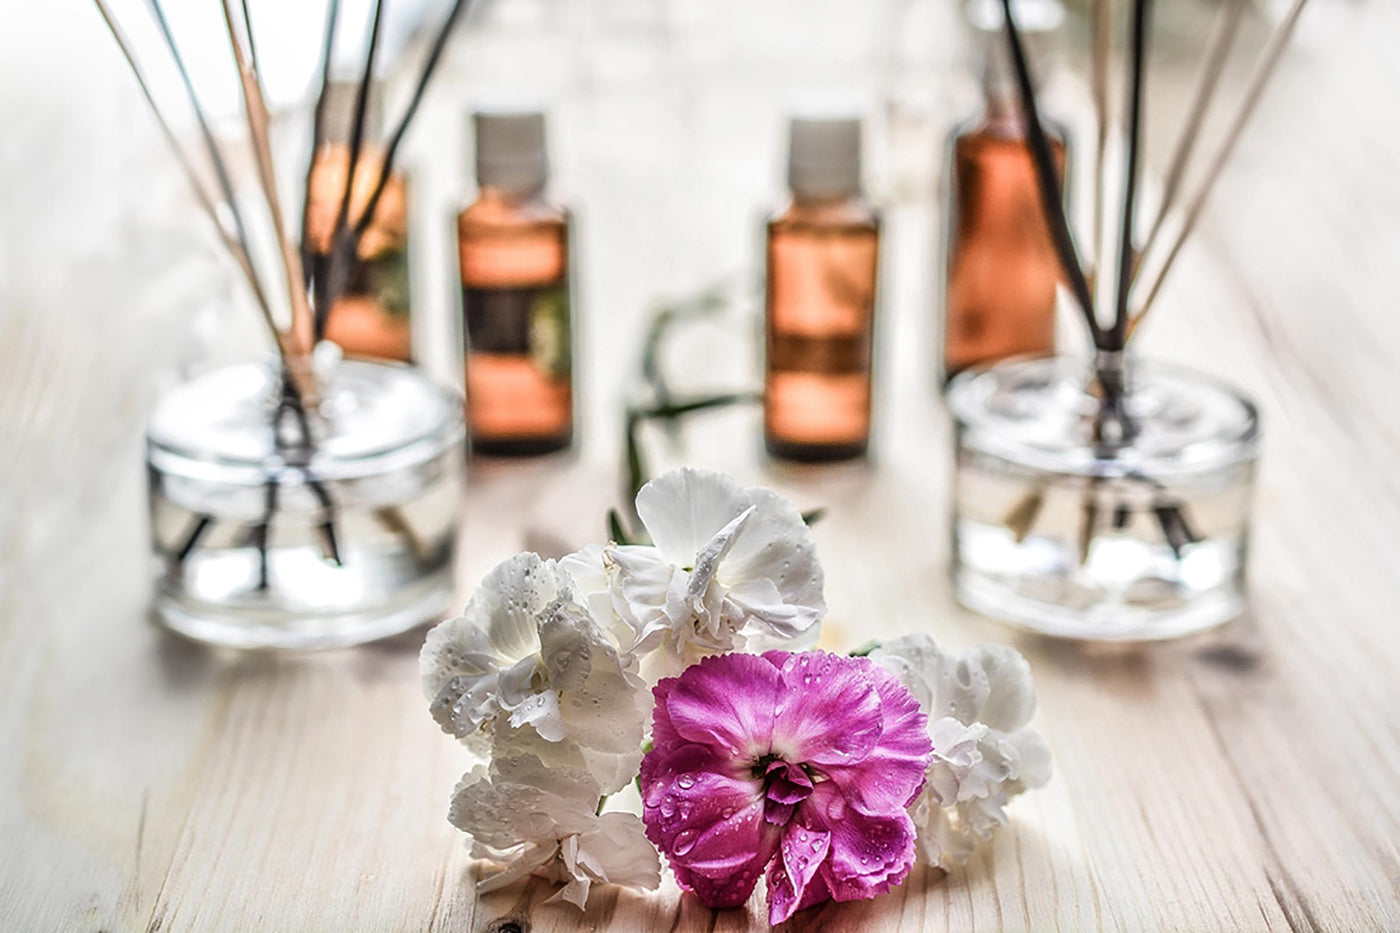 What are the Health Benefits of using Essential Oils?